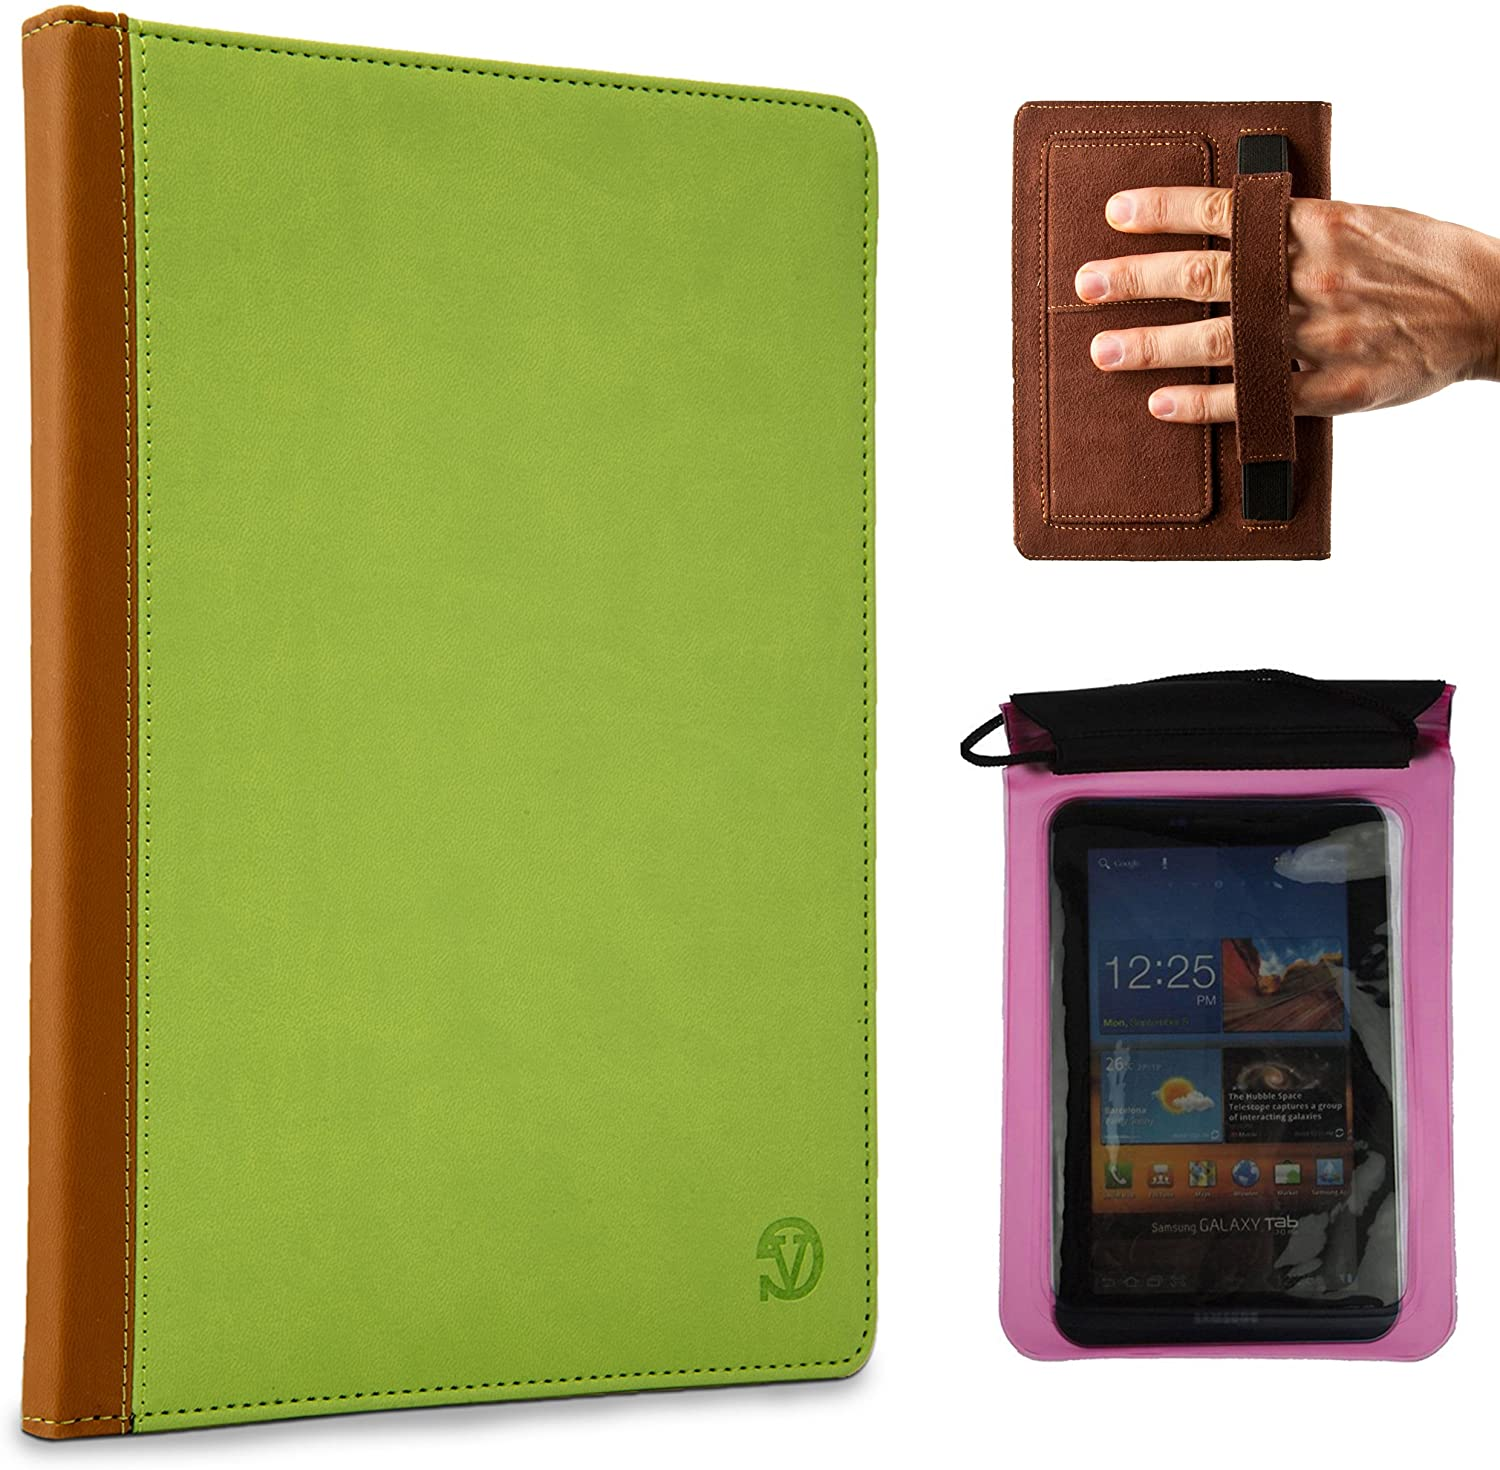 Mary Portfolio Lightweight Hard Cover for HP Mesquite 7 inch Tablet and Pink Waterproof Sleeve